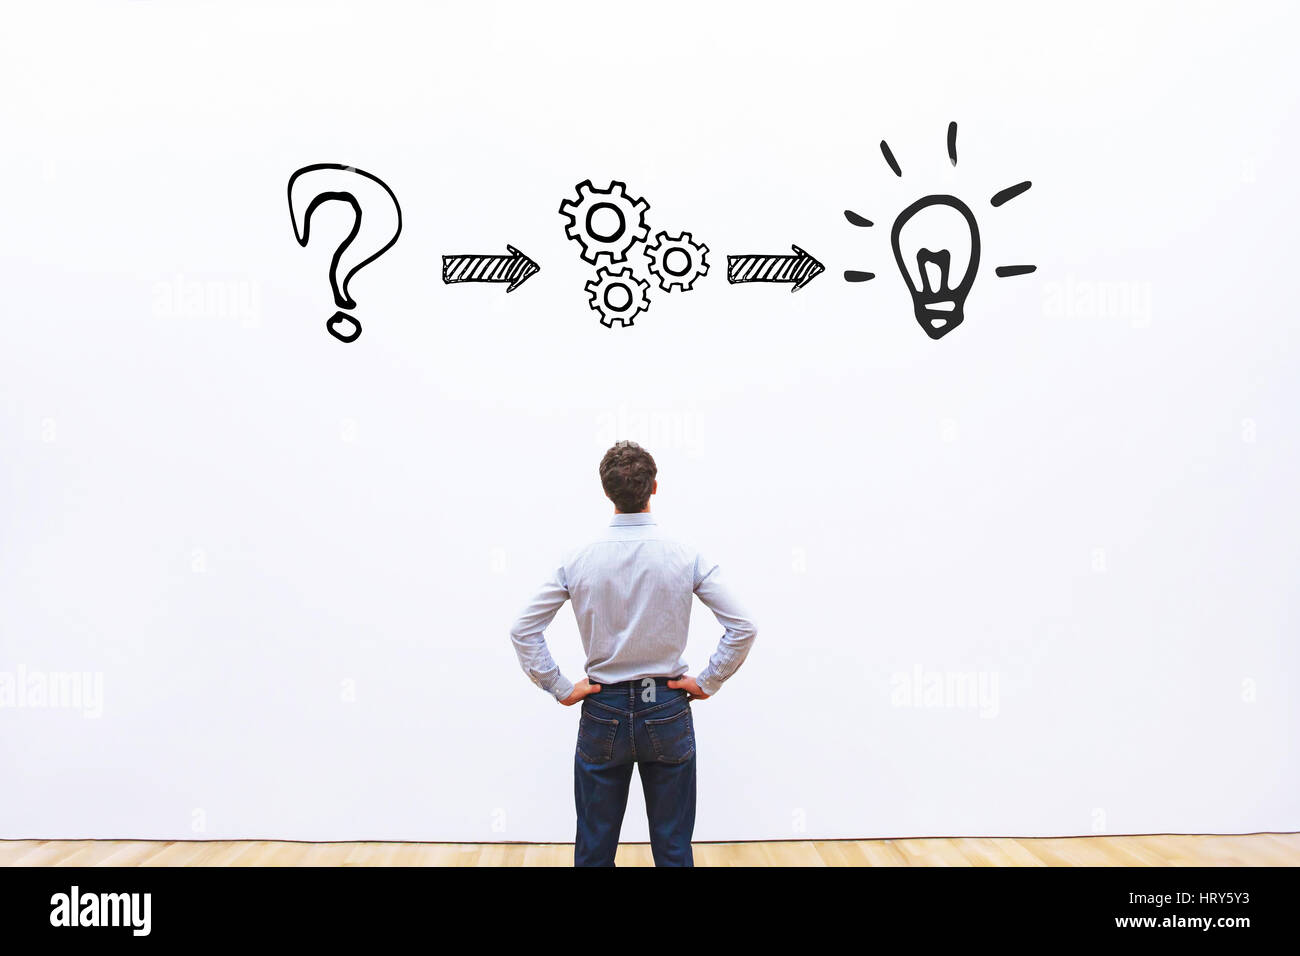 thinking or problem solving business concept - Stock Image